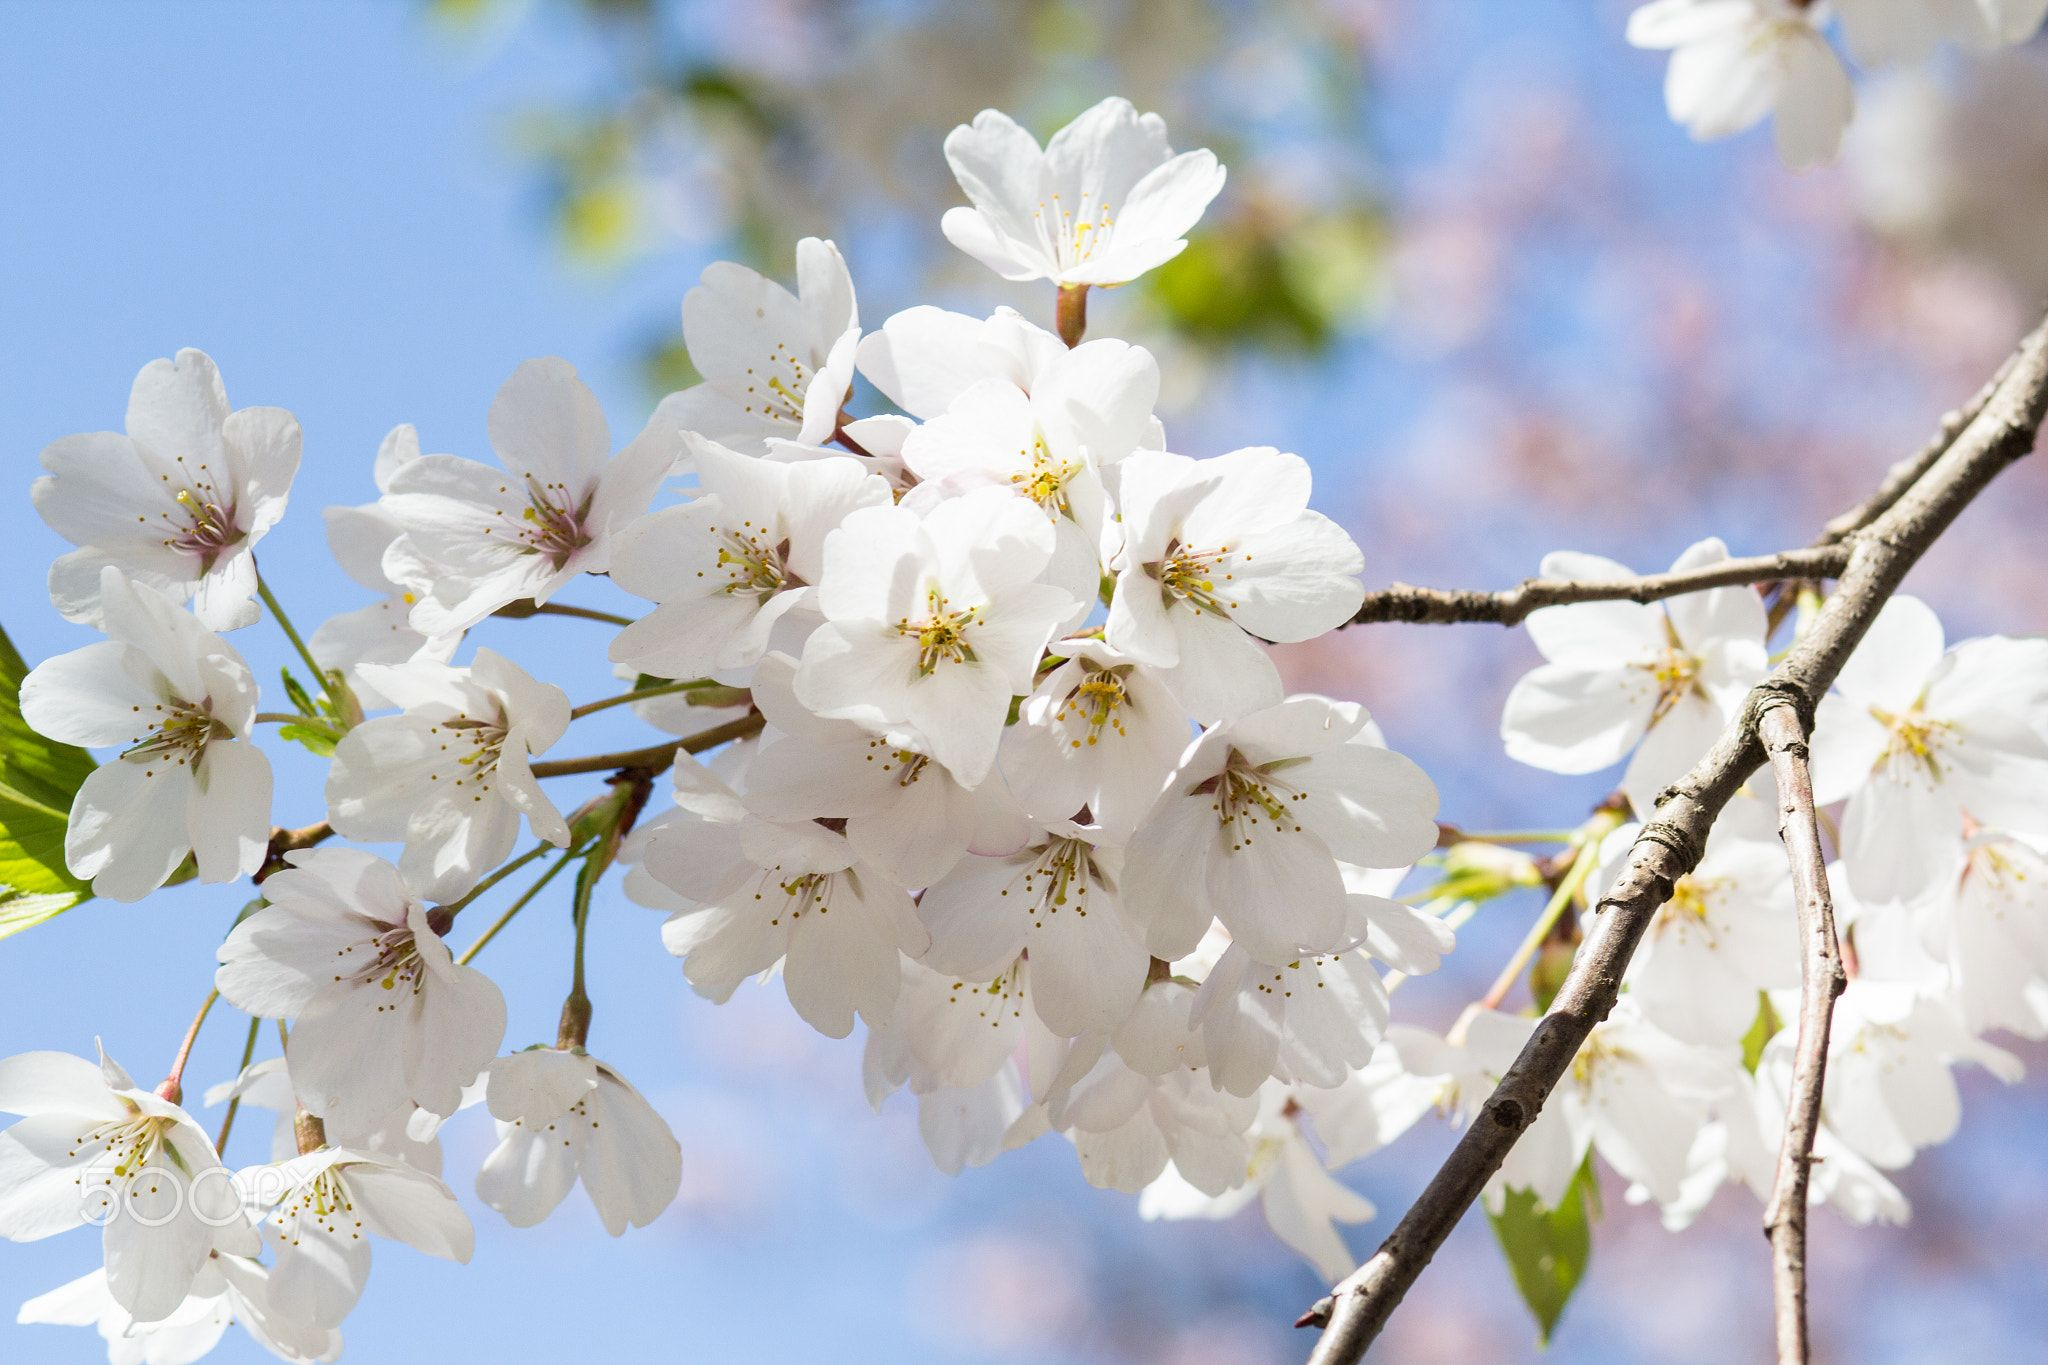 Cherry Blossoms Cherry Blossoms Blooming In The Spring Spring Blossom Blossom Cherry Blossom